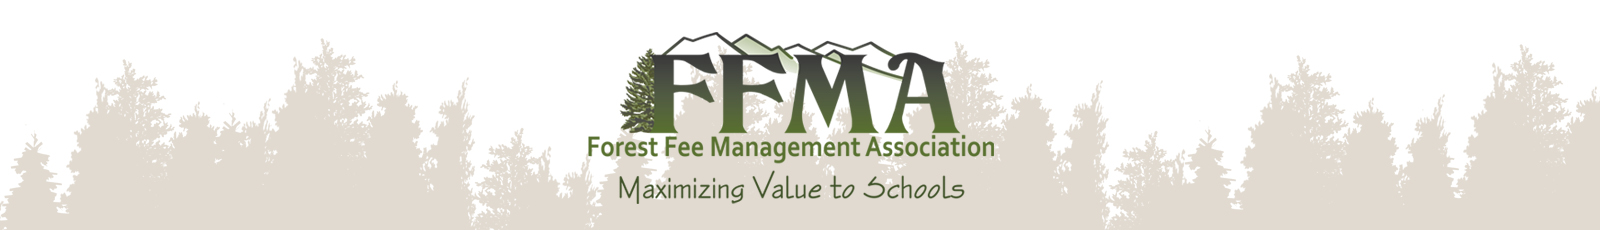 Yavapai County Education Service Agency - Forest Fee Management Association